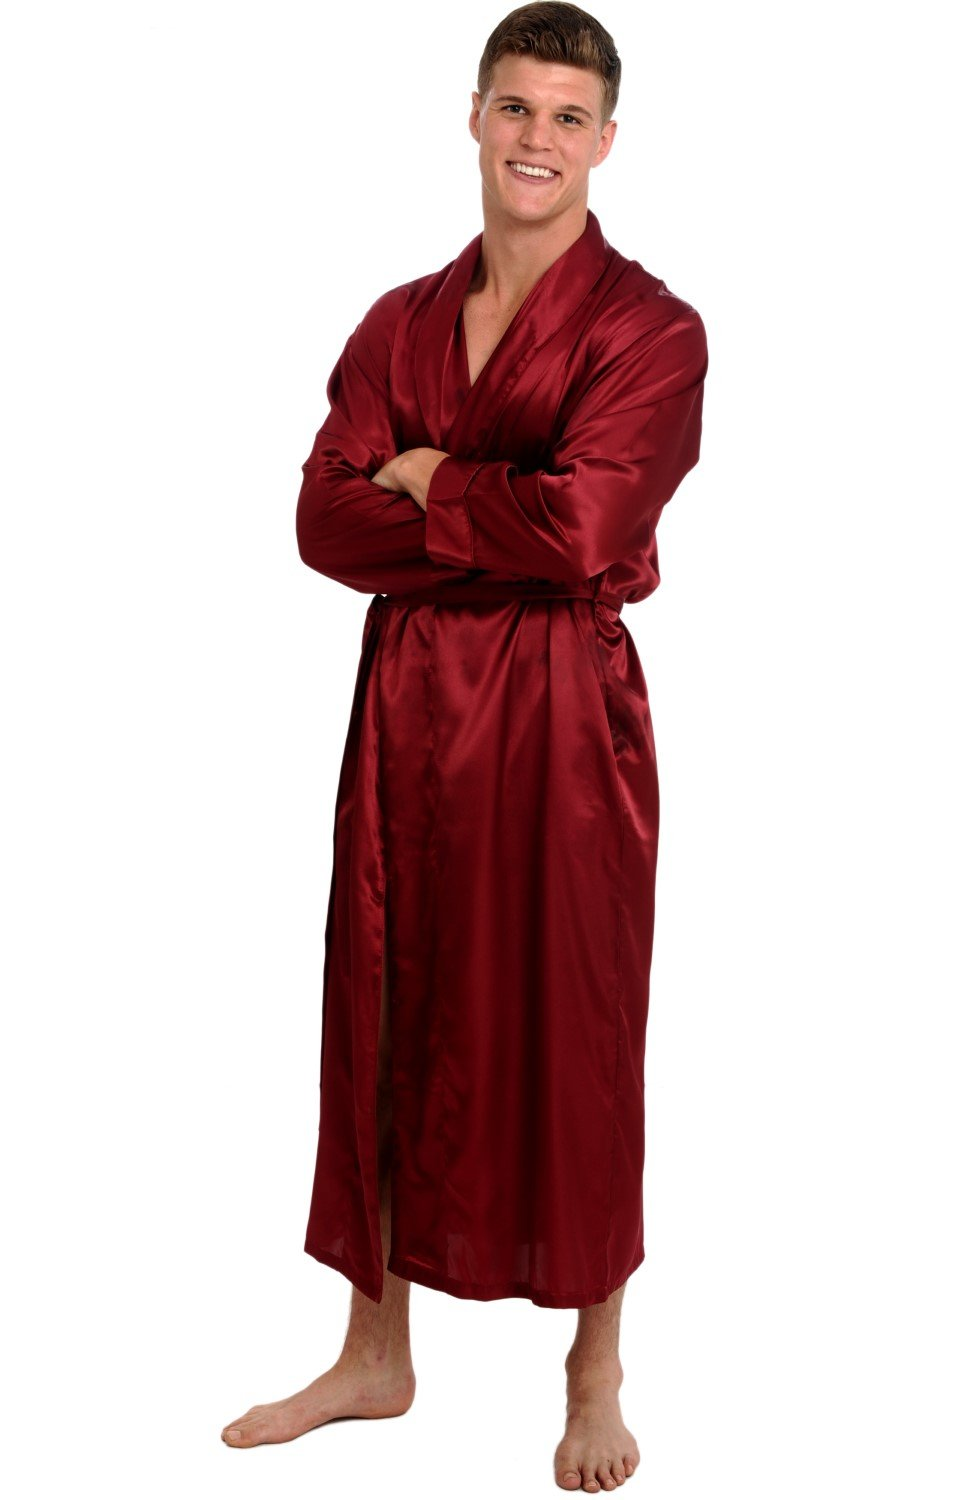 Alexander Del Rossa Mens Satin Robe, Long Lightweight Loungewear, 3XL Burgundy (A0720BRG3X)